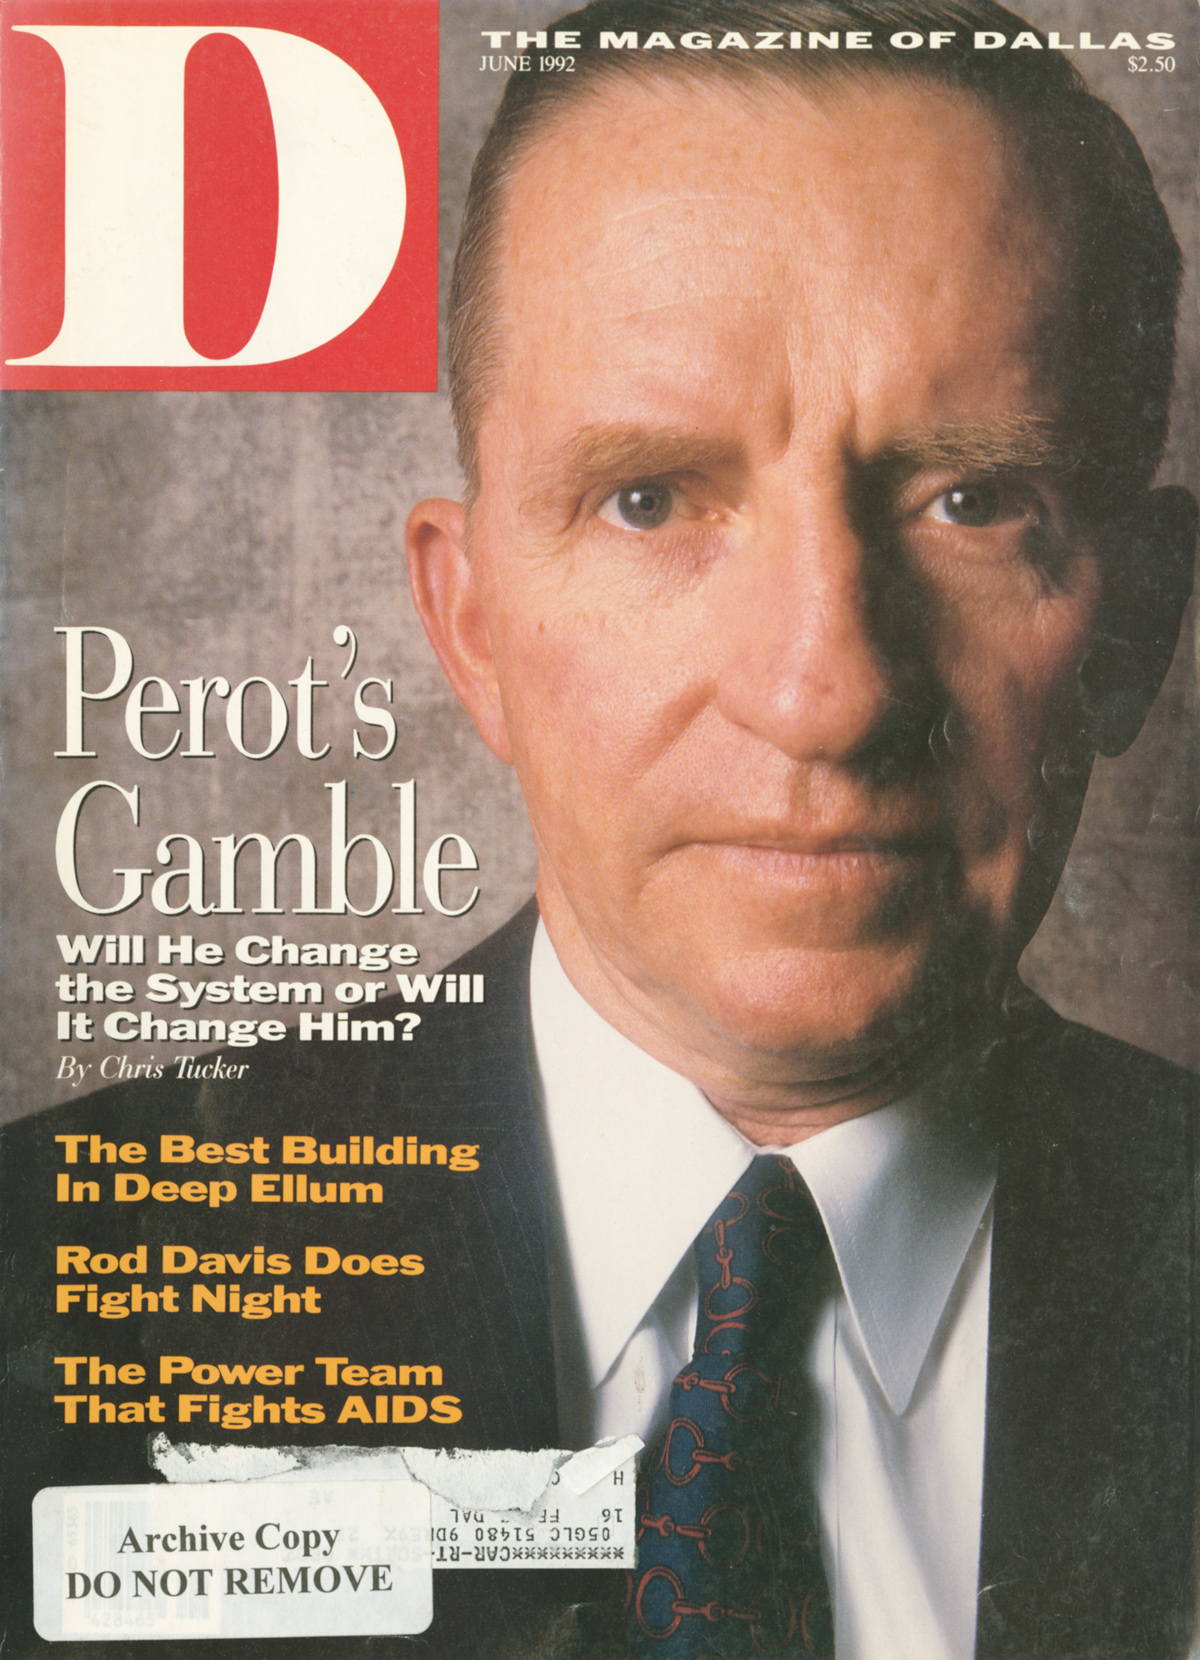 June 1992 cover